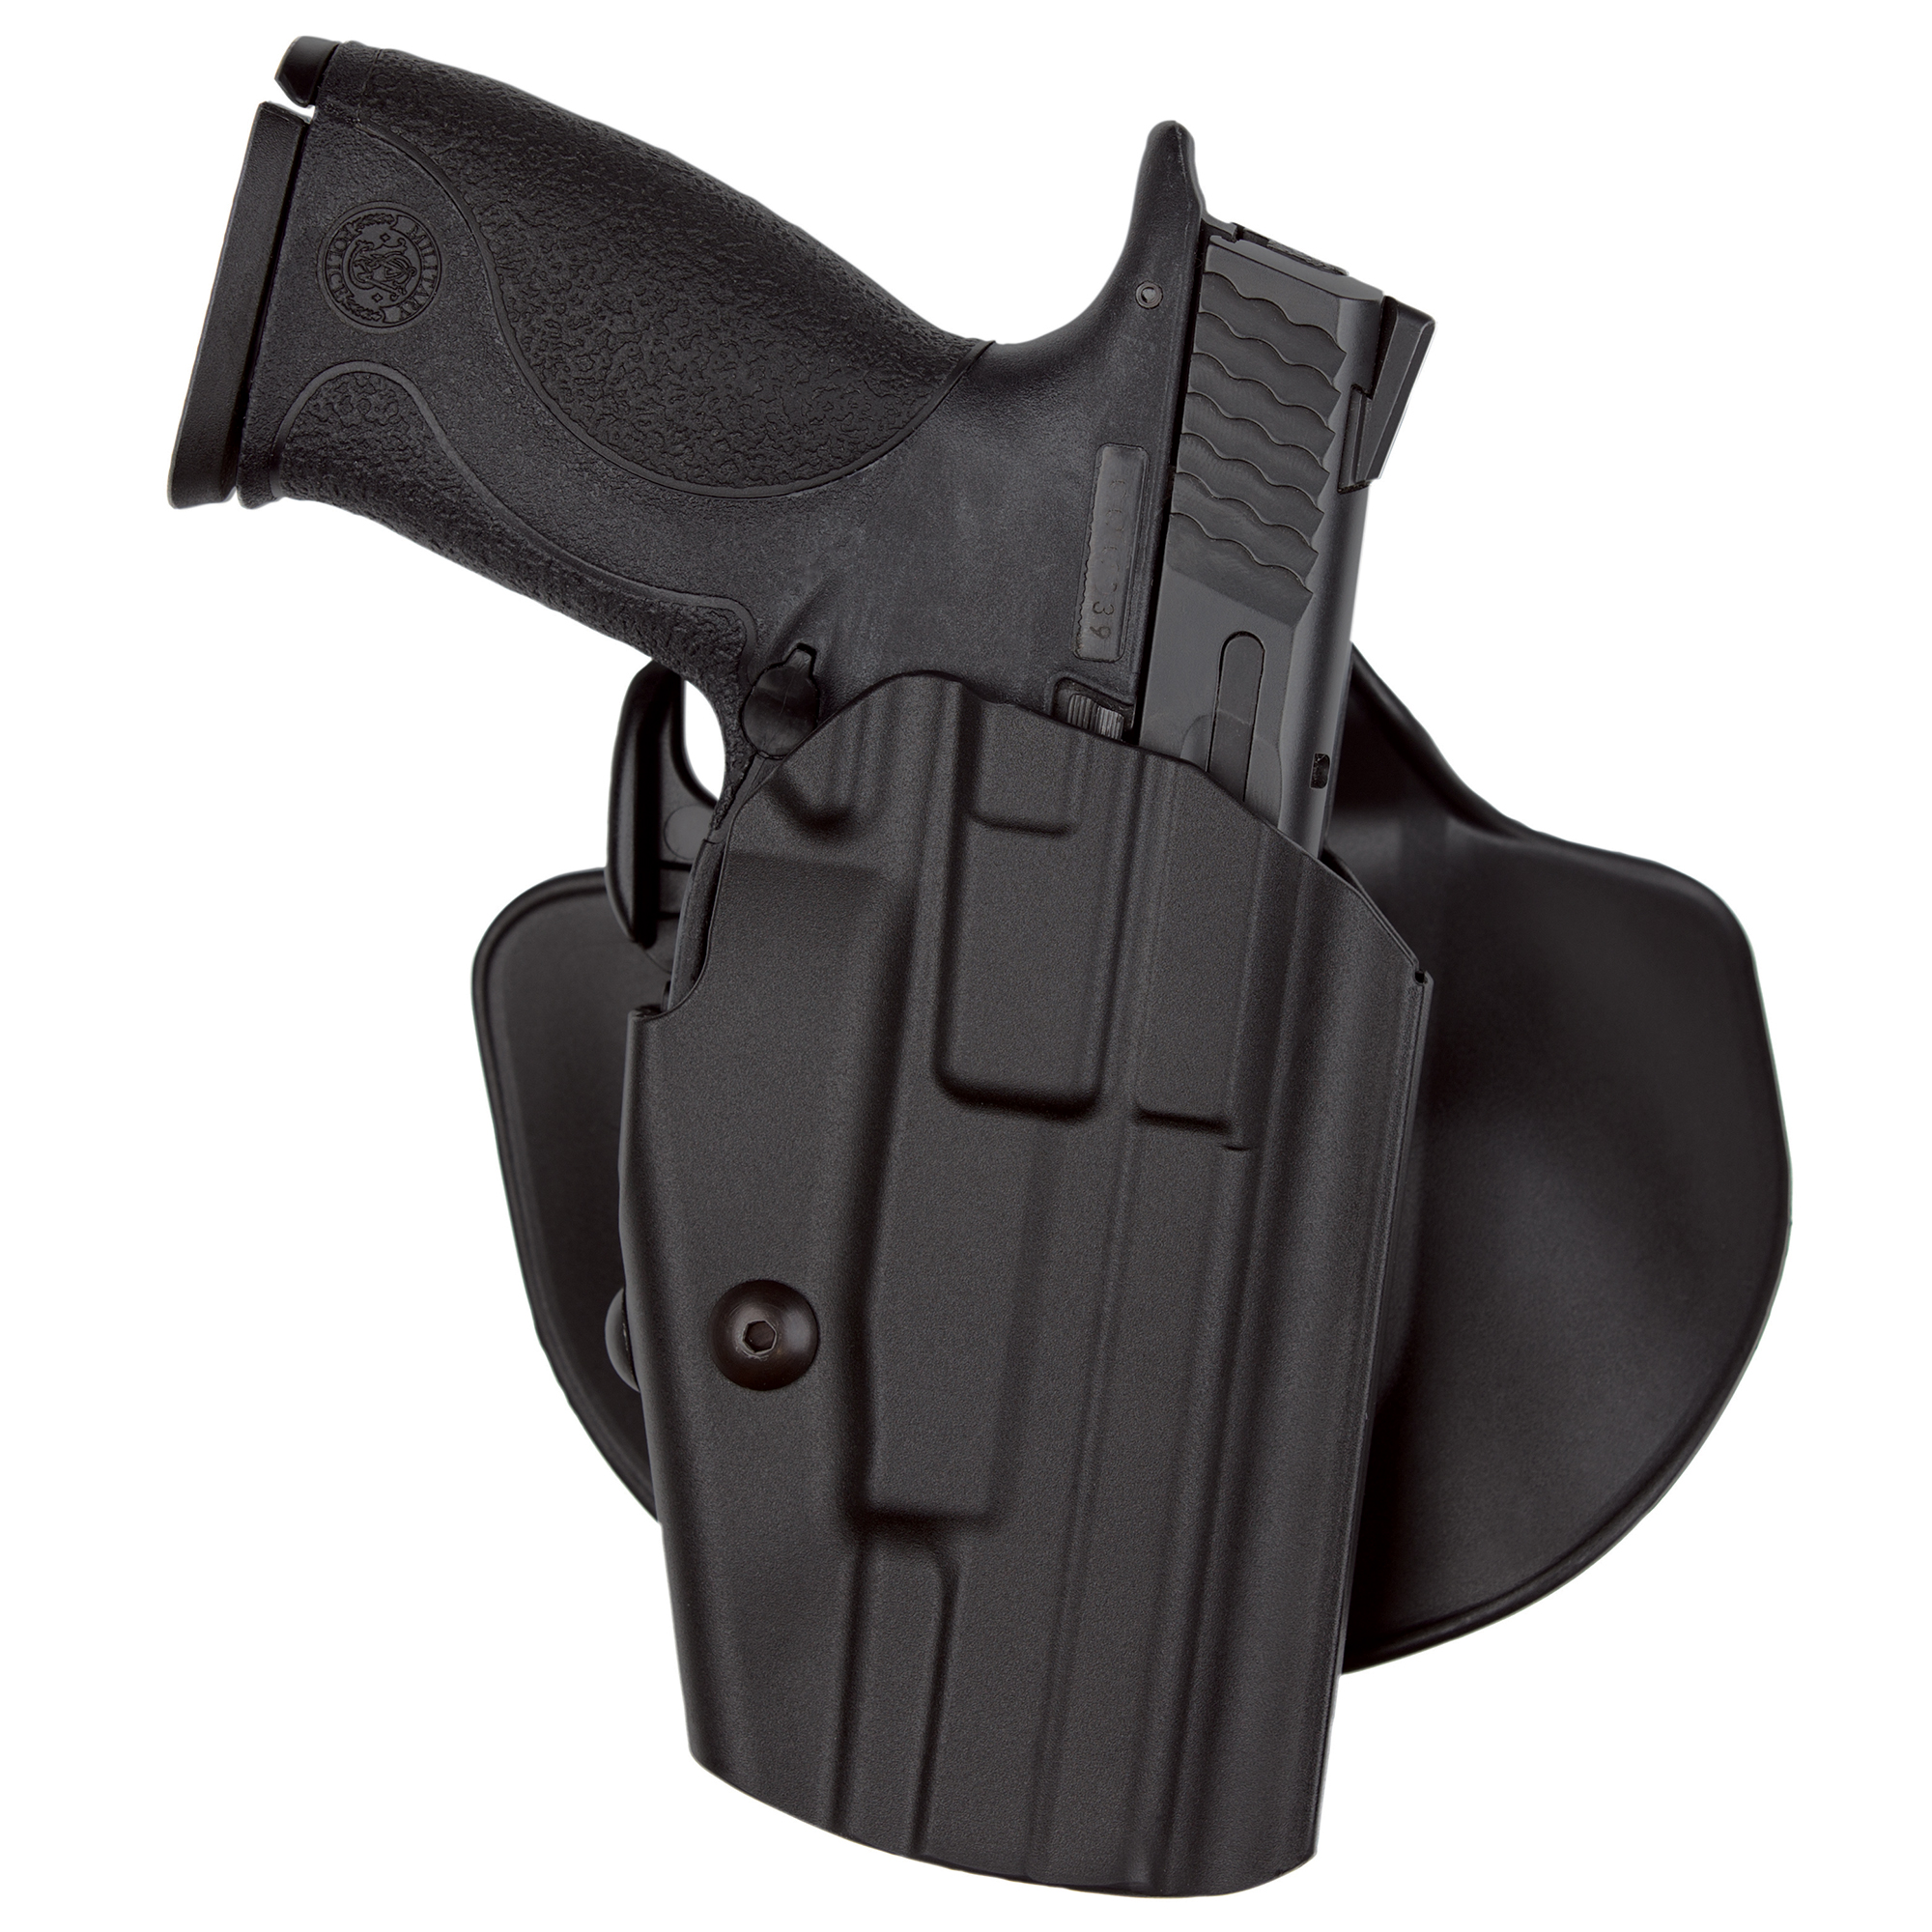 Safariland Model 578 GLS Pro-Fit Paddle Holster, Long Standard